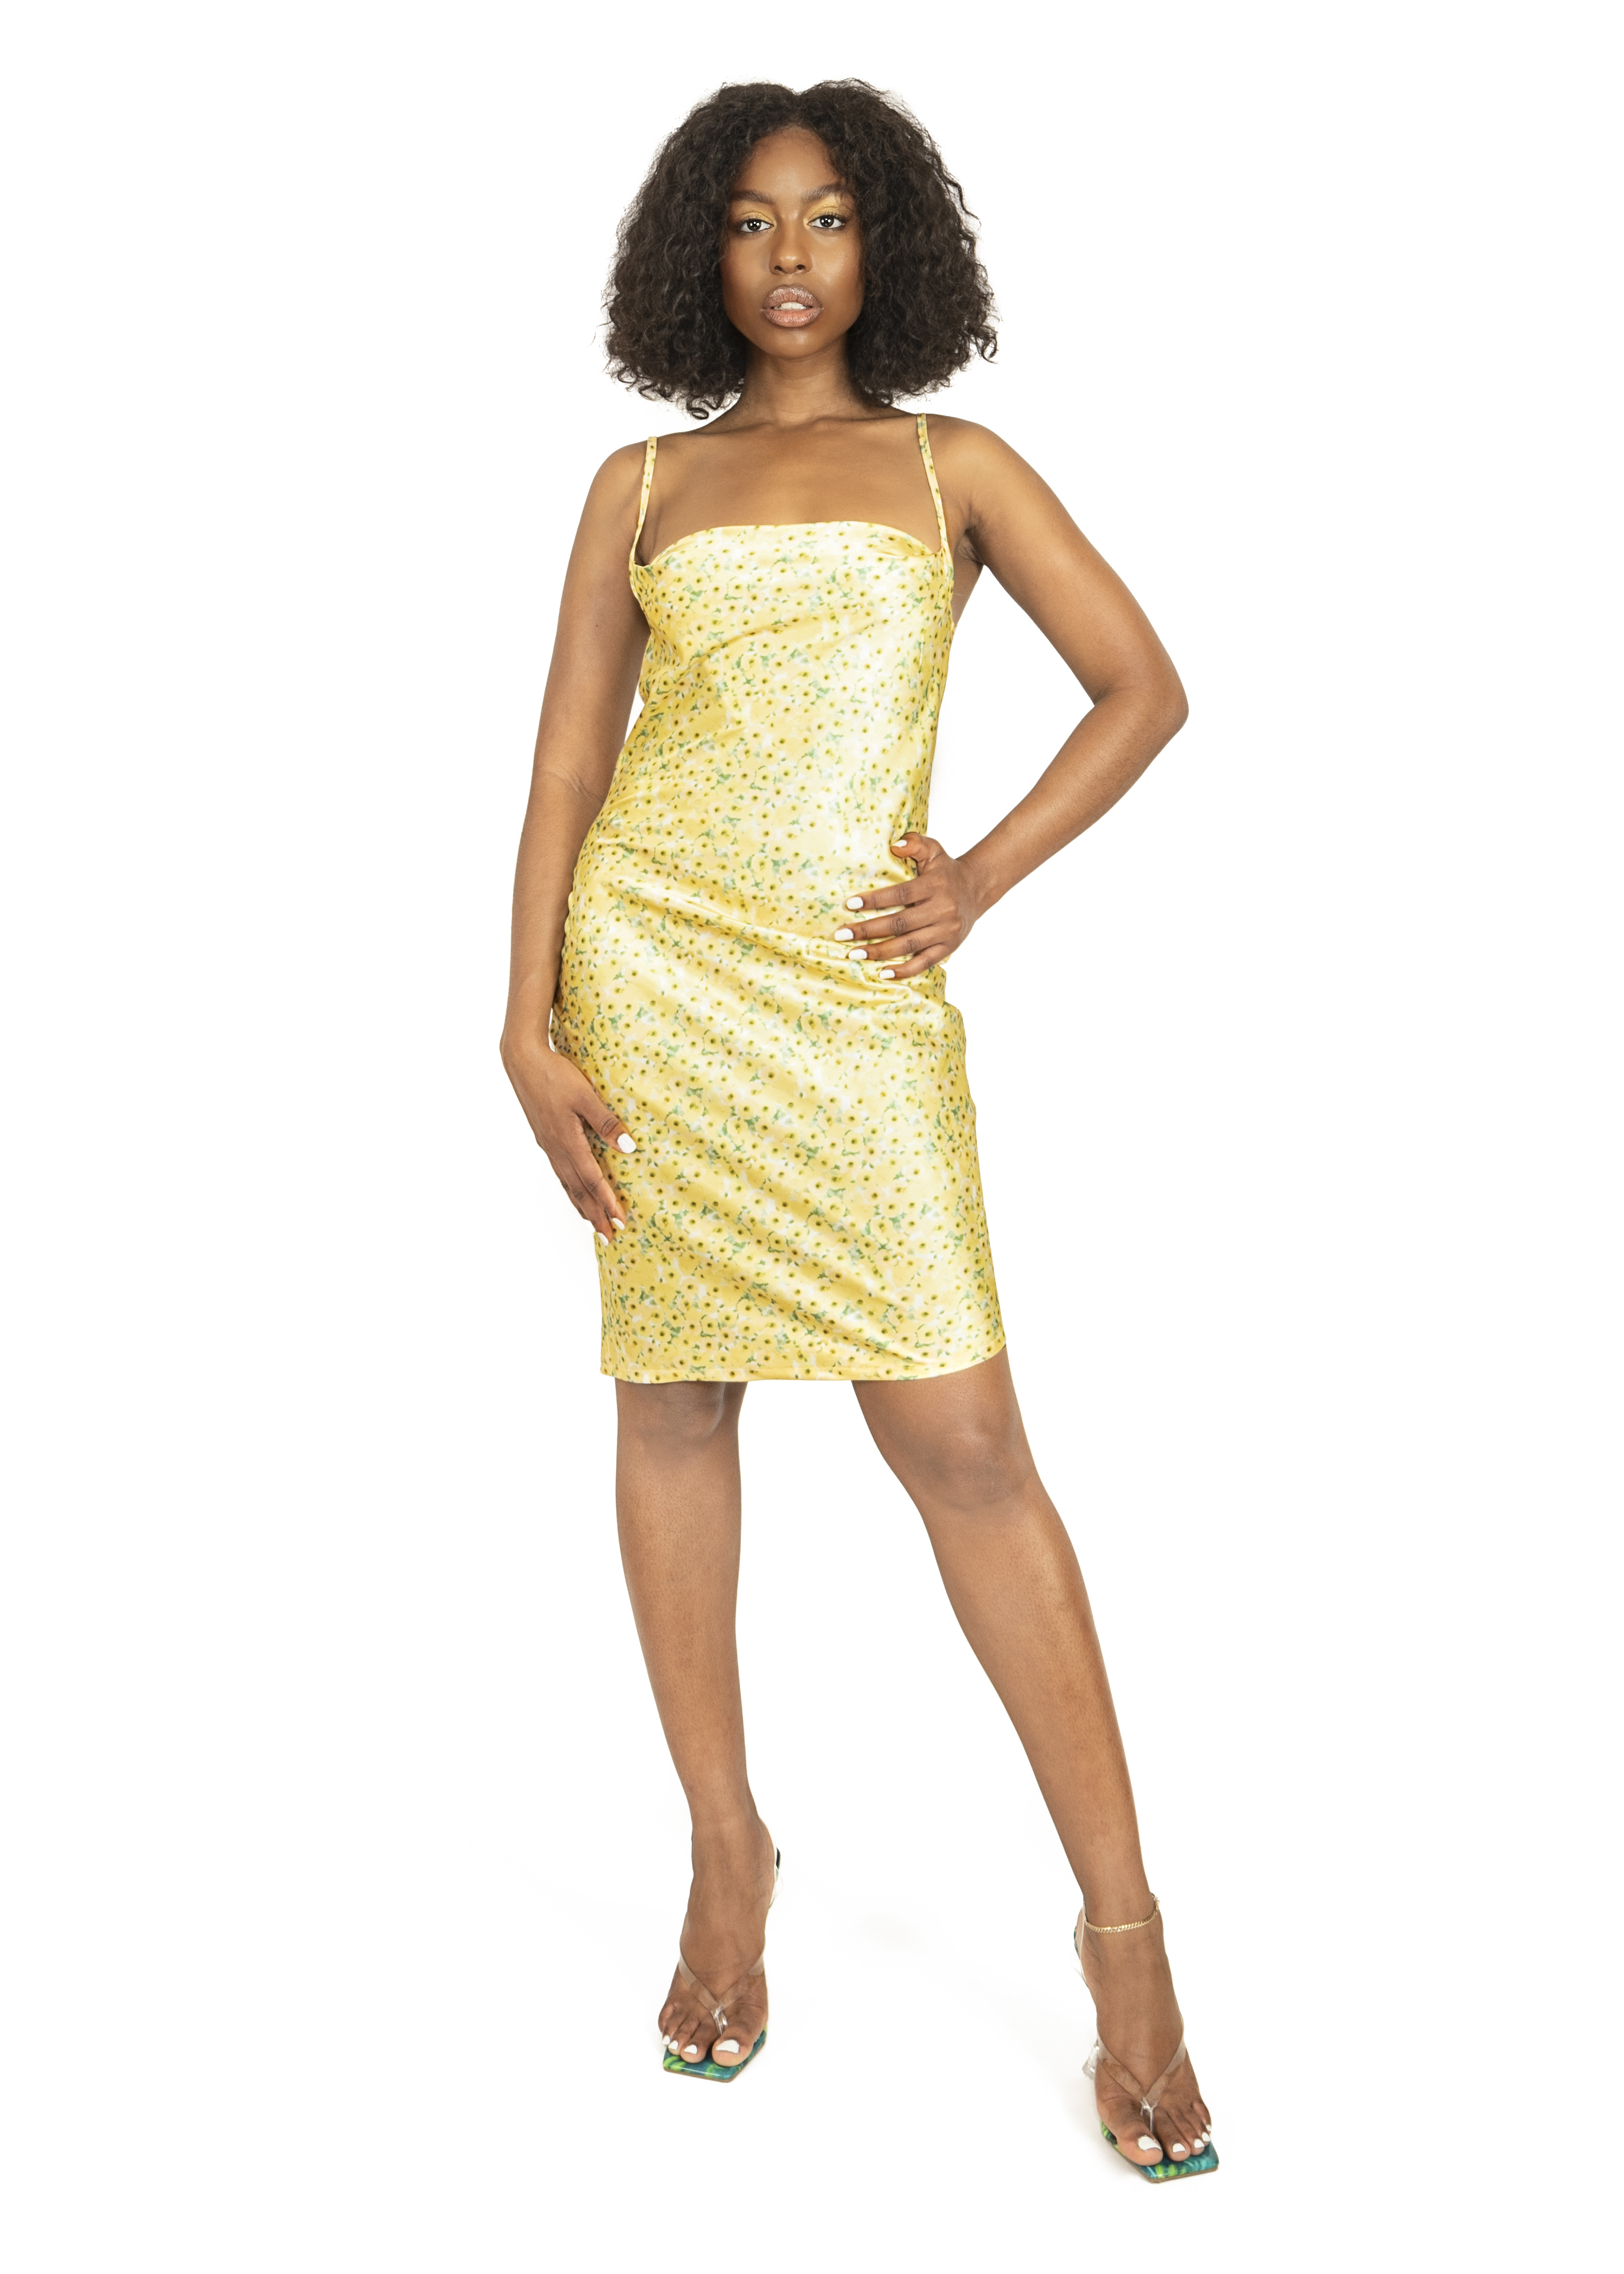 Dress_cloths_garments_product_photos_with_model_07